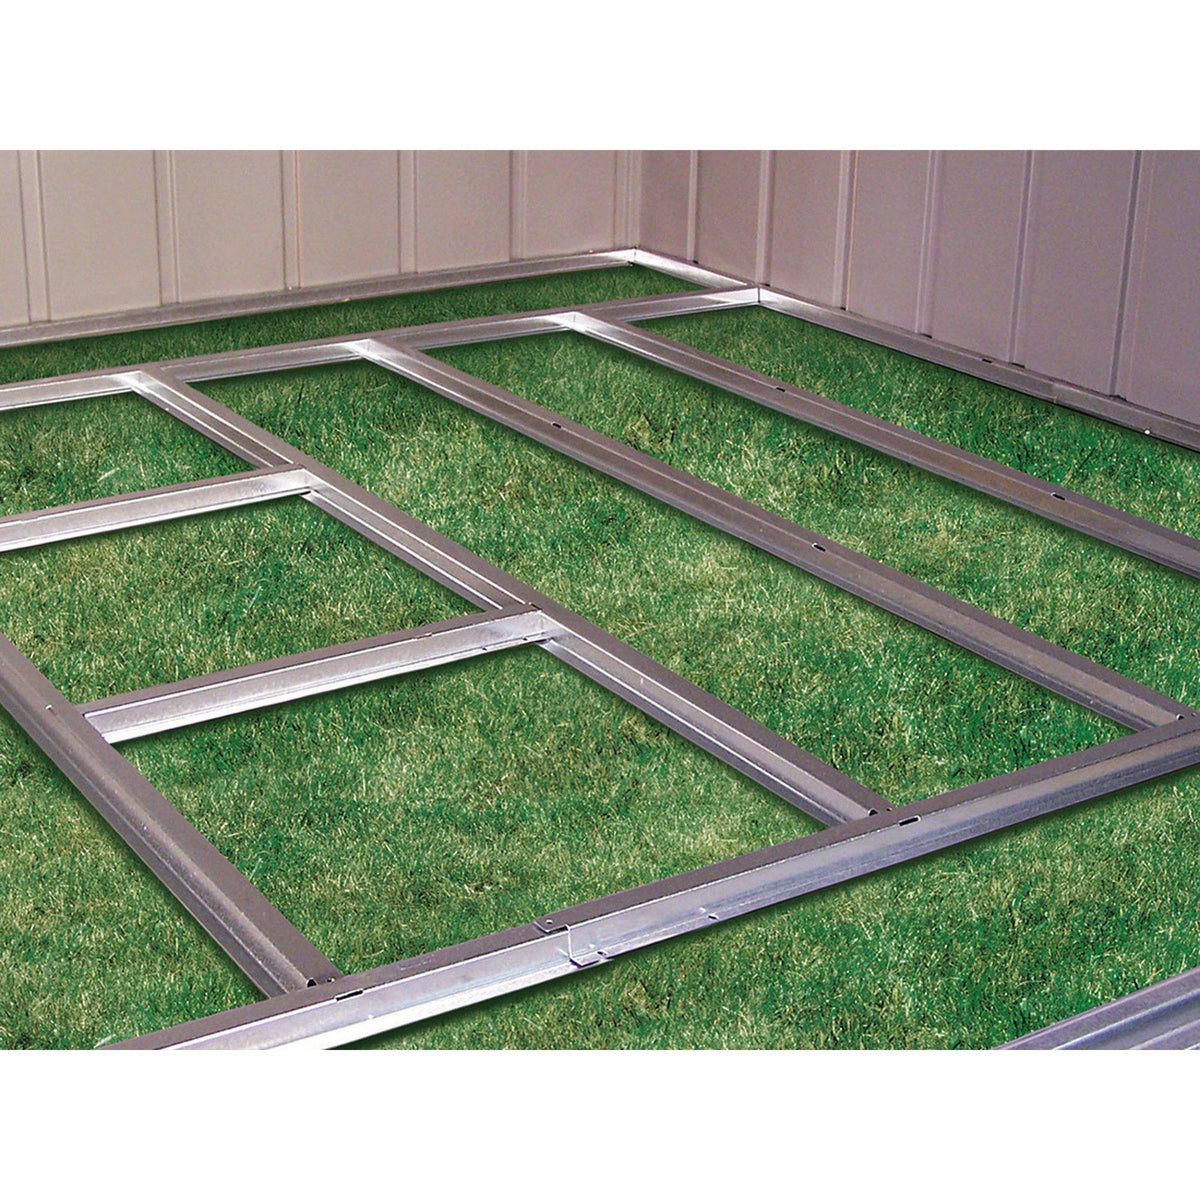 Arrow Shed FB109 Floor Frame Kit for 8'x8', 10'x 7', 10'x8', 10'x9' & 10'x10